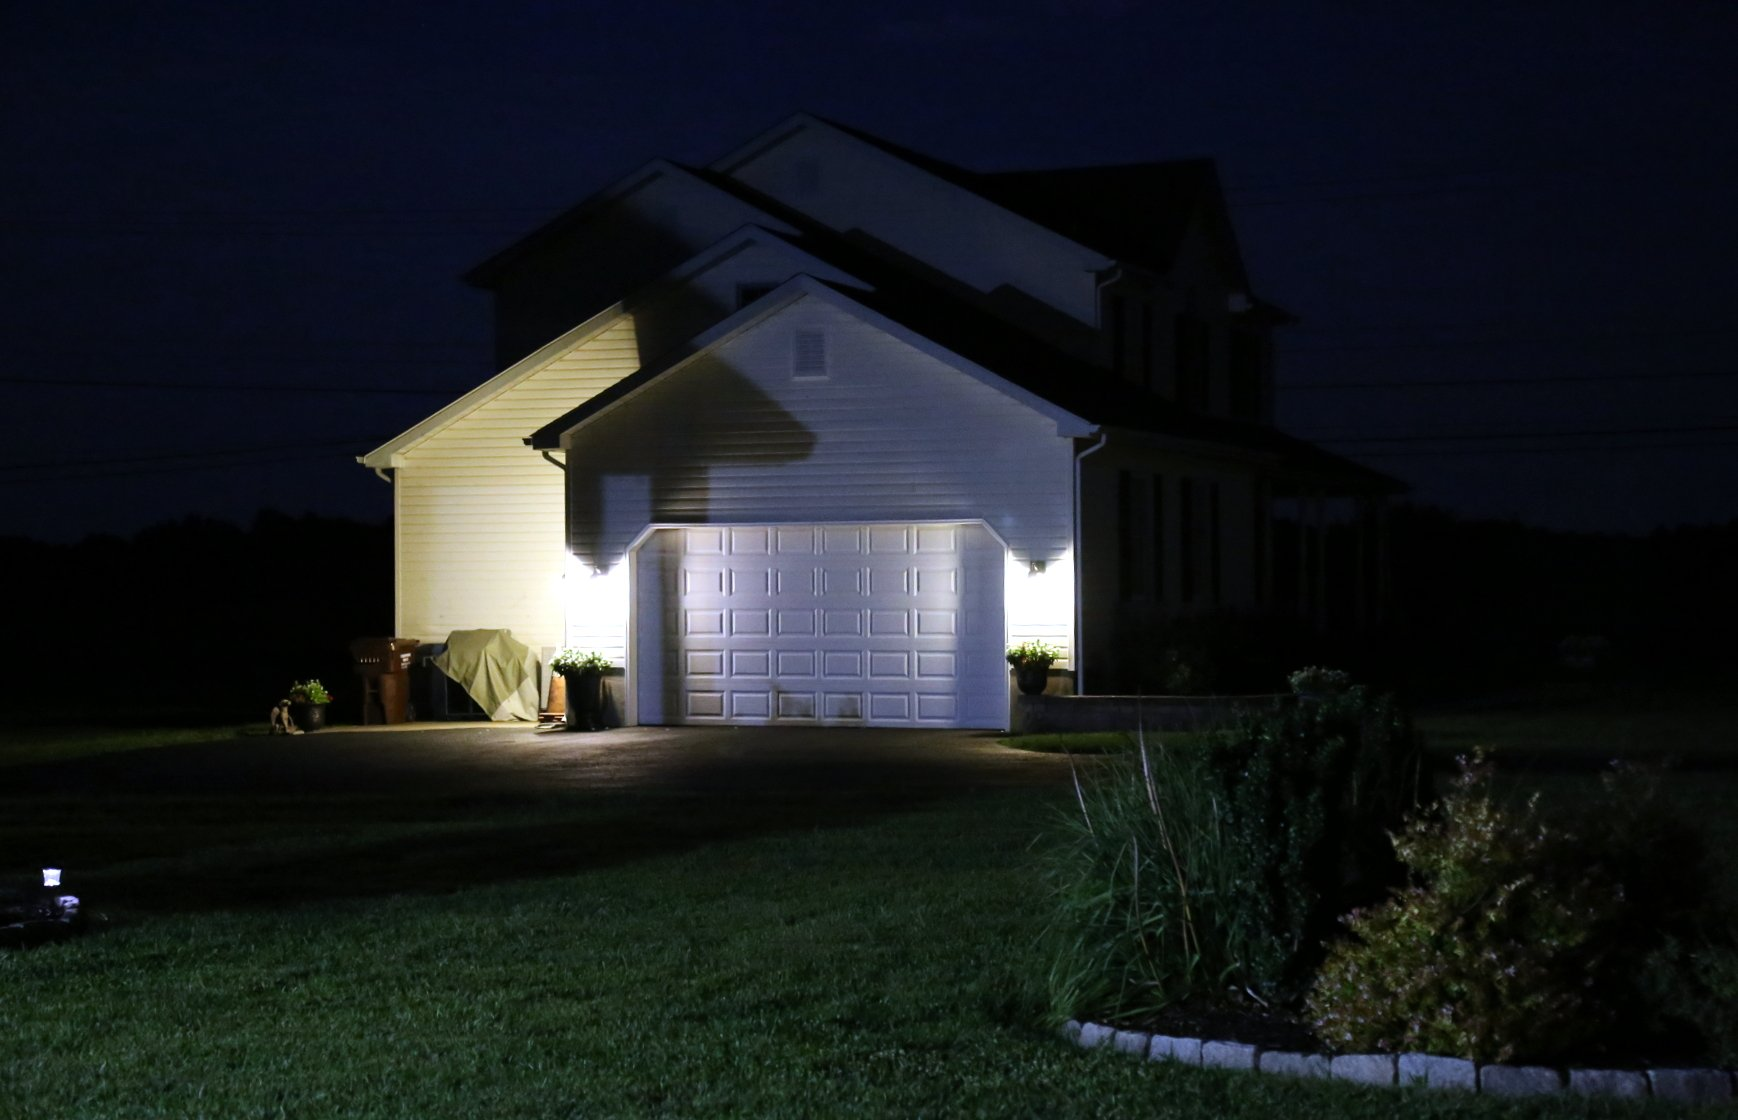 Outdoor lighting garage lights and landscaping - Haramis Electric